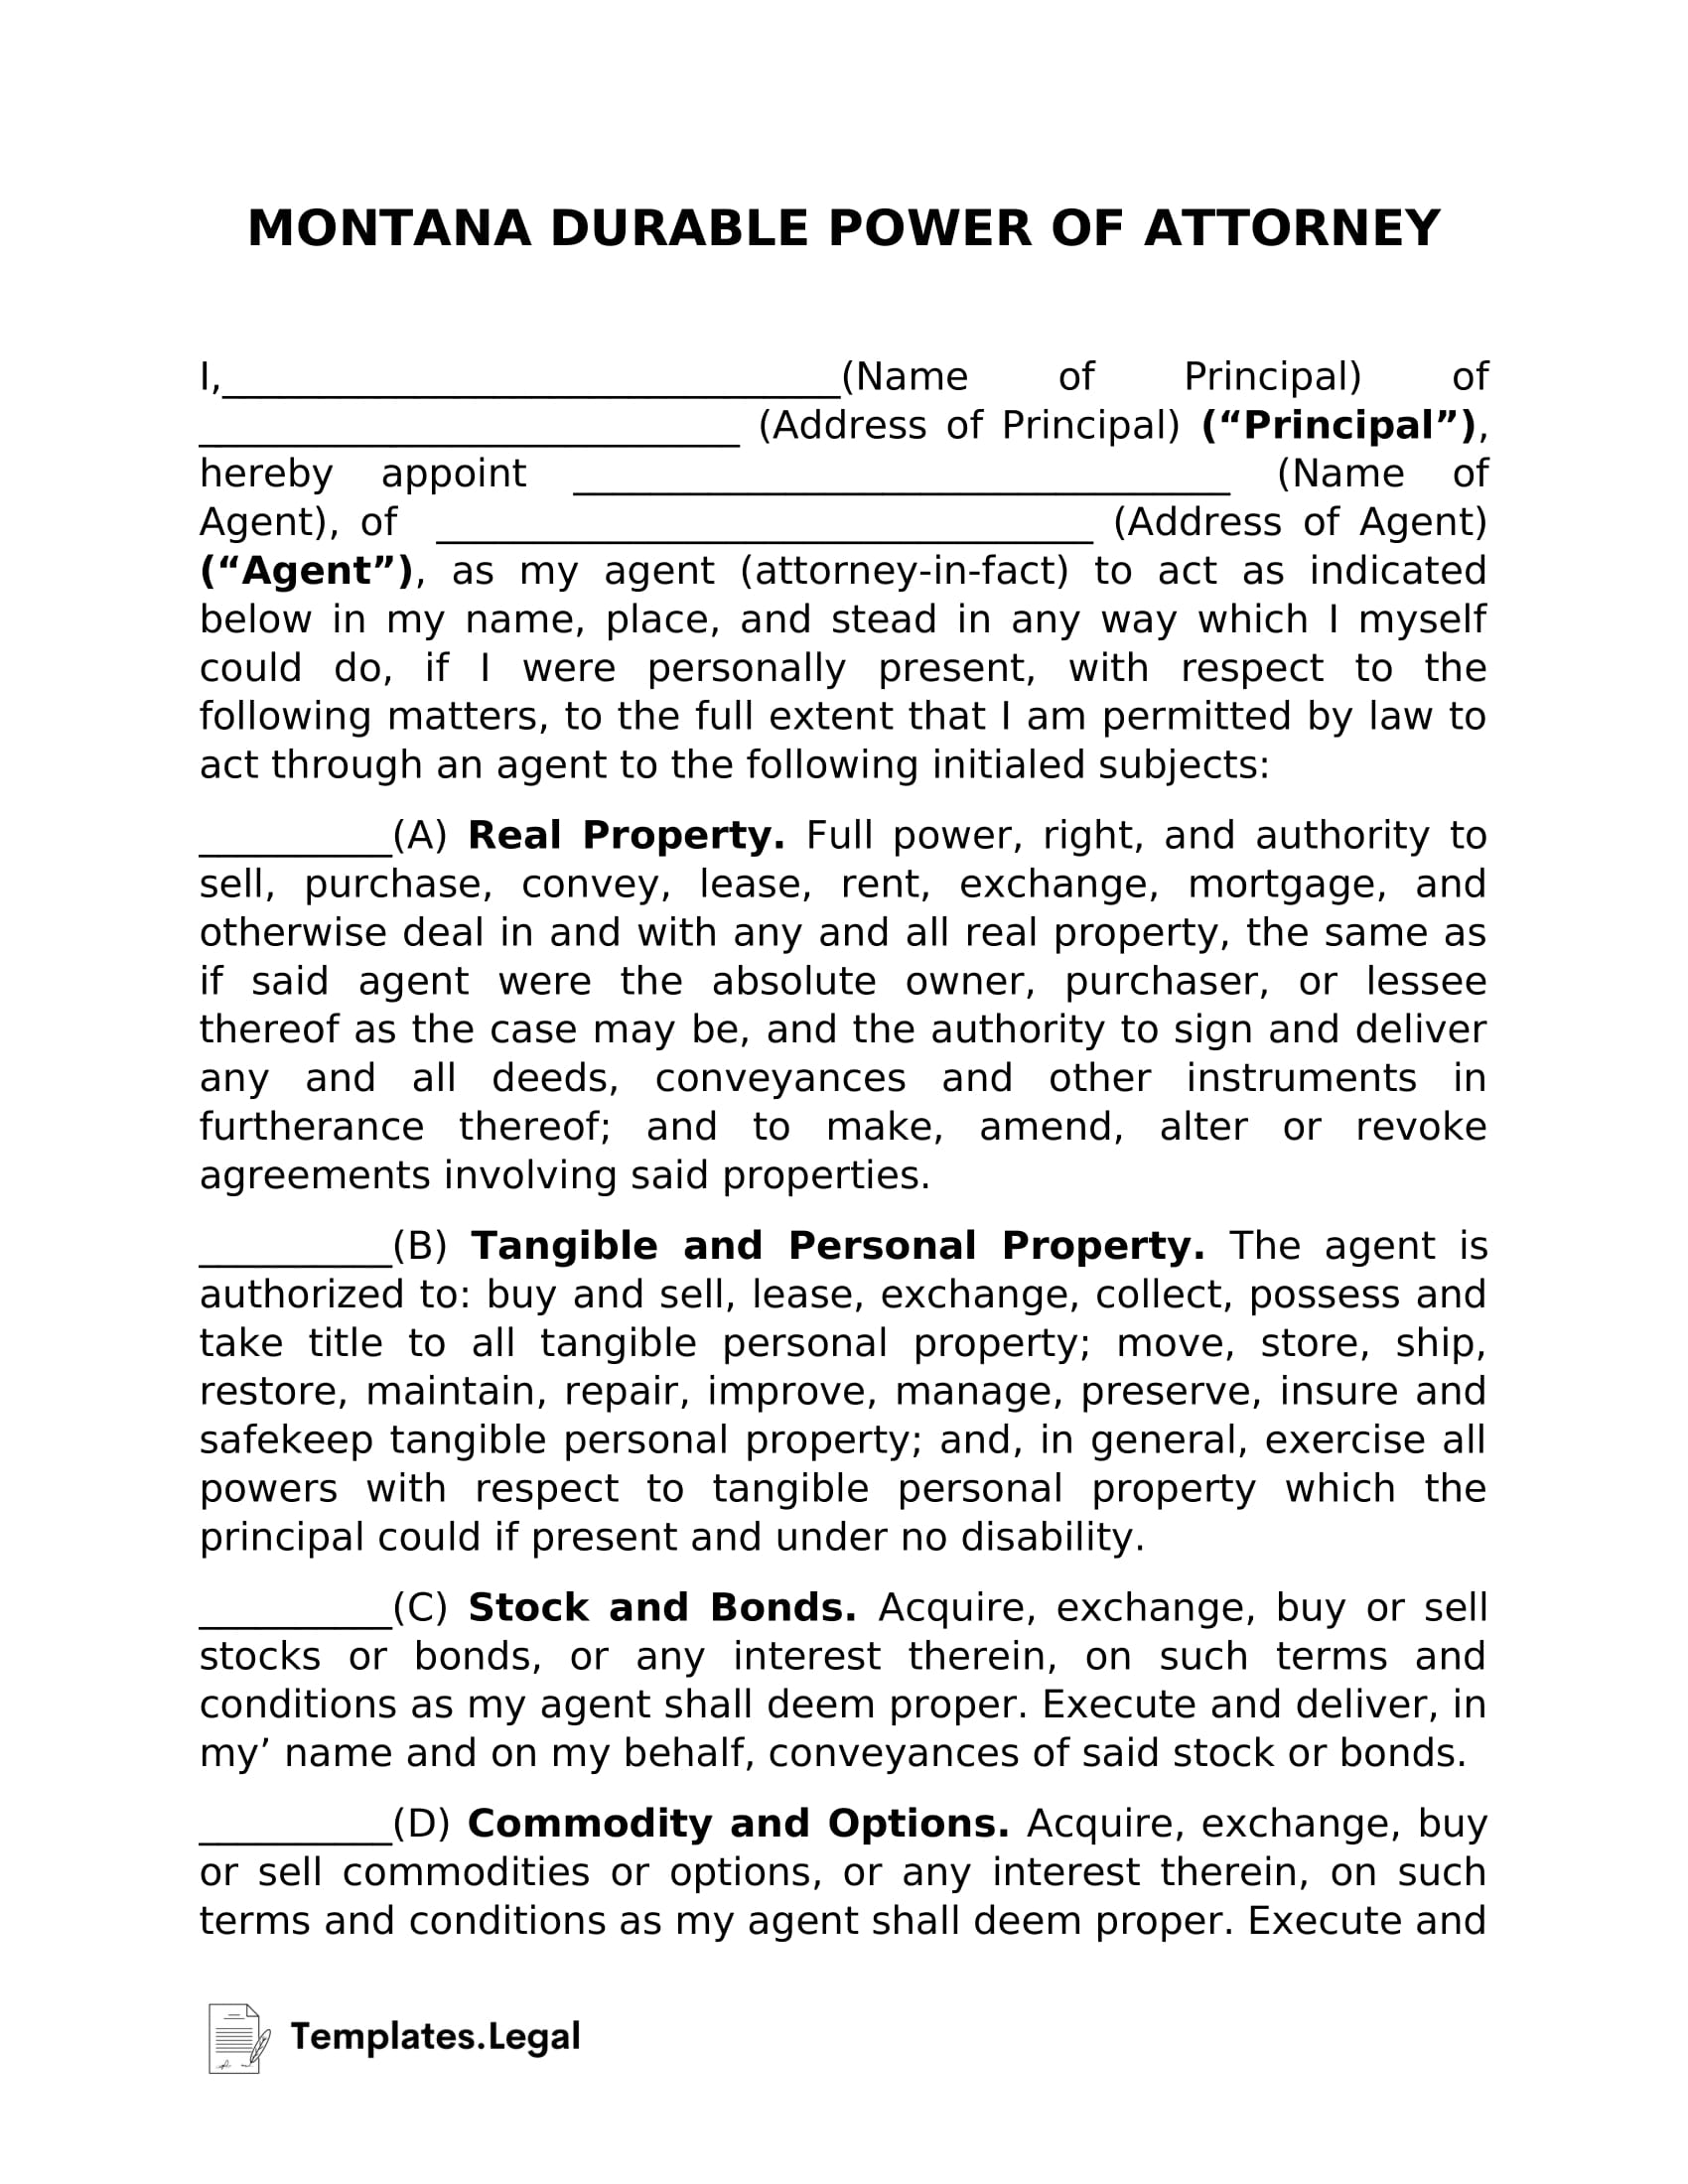 Montana Durable Power of Attorney - Templates.Legal